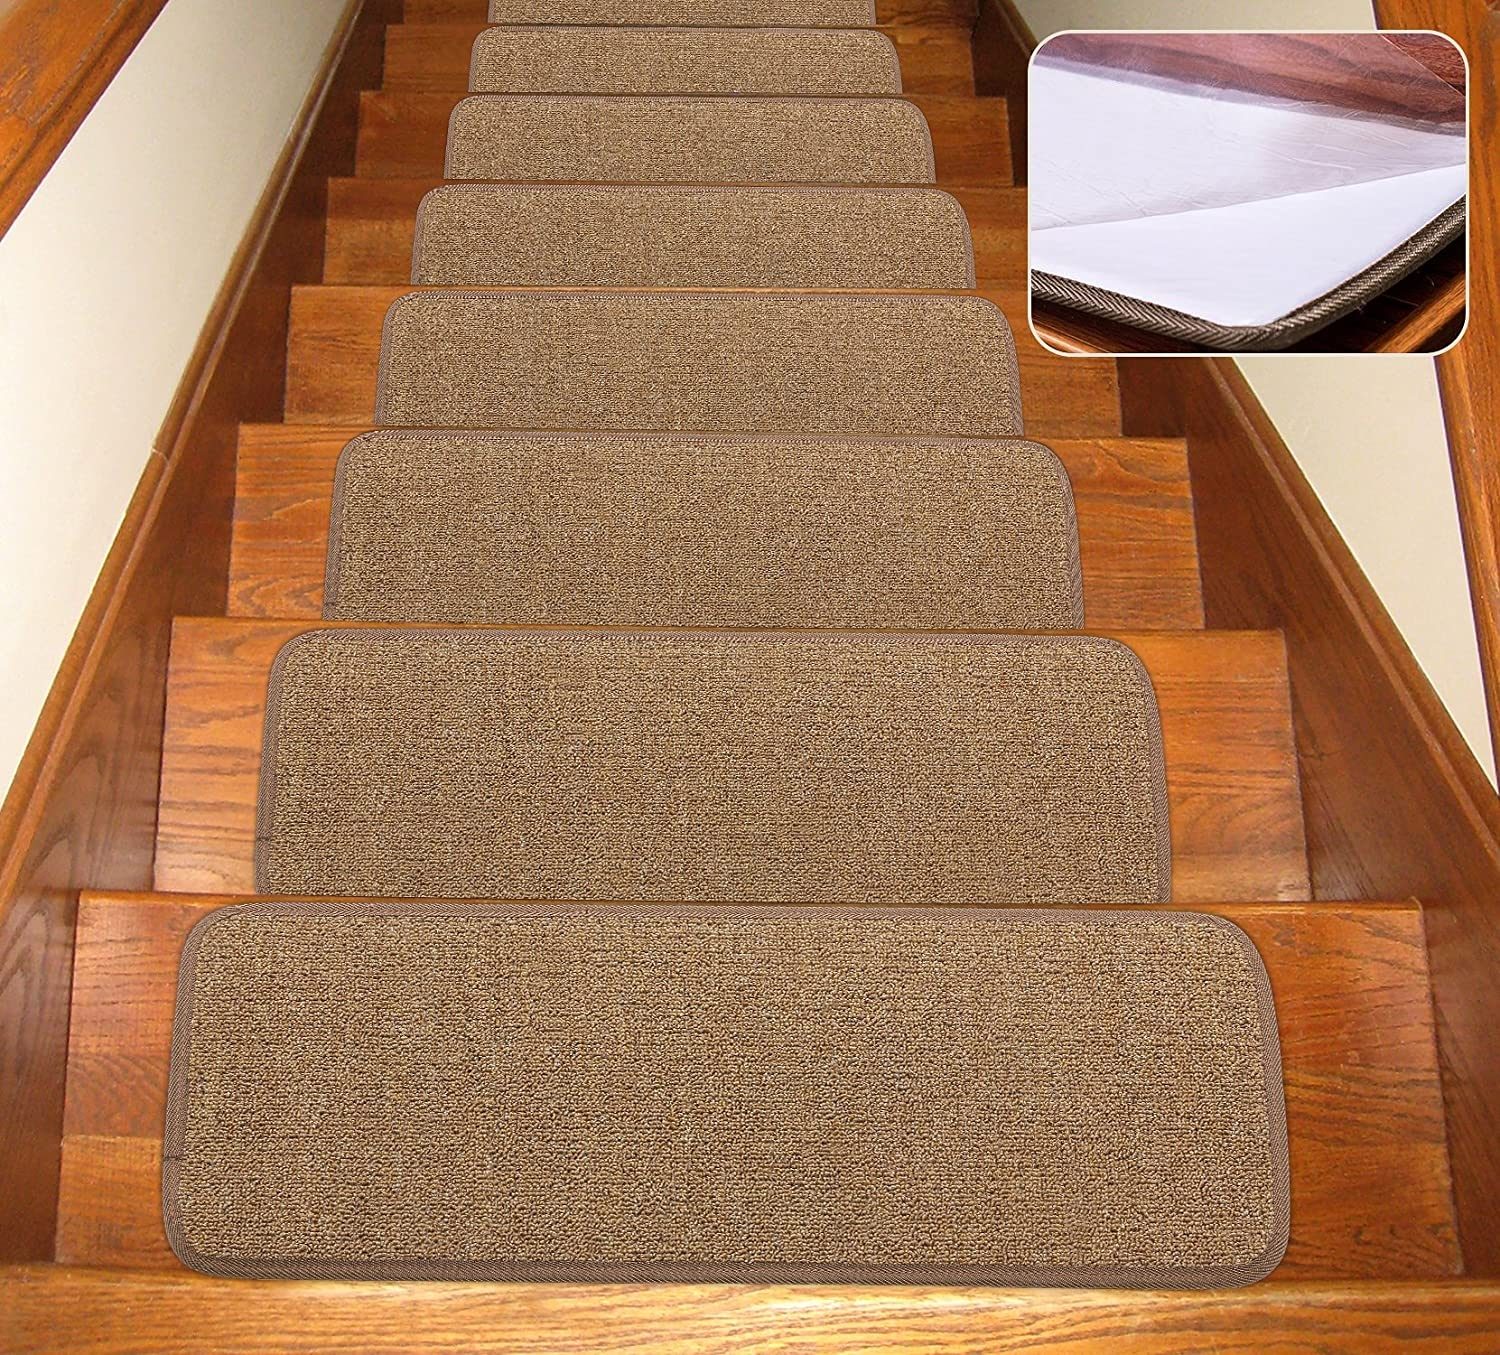 Seloom Stair Treads Carpet Non Slip With Skid Resistant Rubber | Individual Carpet Stair Treads | Bullnose Carpet | Wood | Hardwood | Flooring | Spiral Staircase